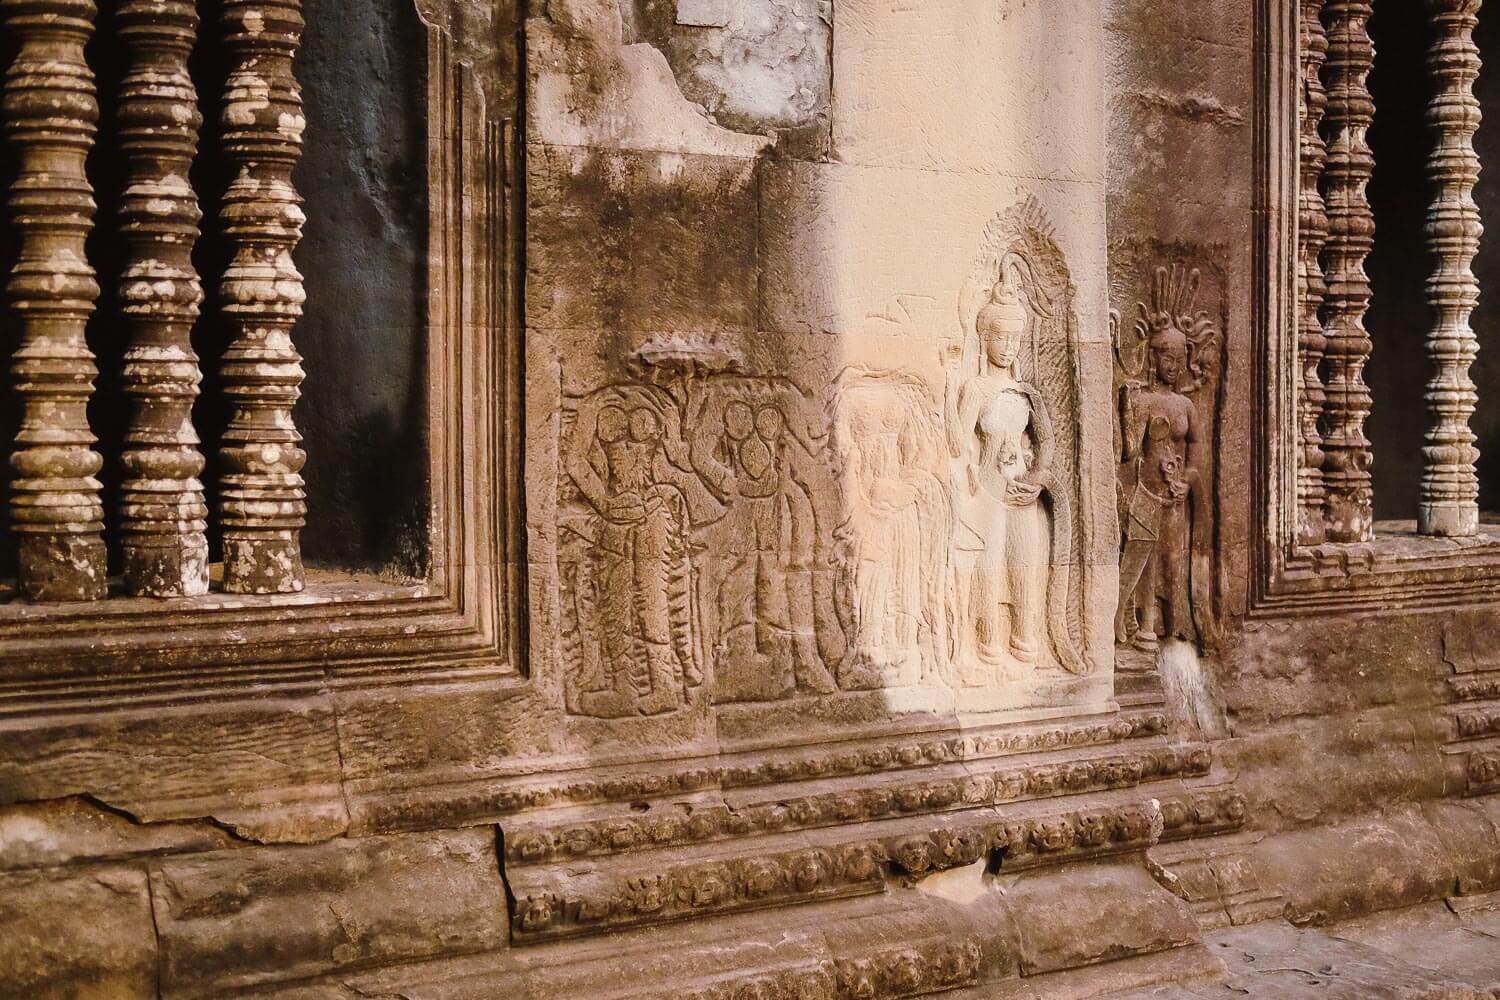 Unfinished carvings in Angkor Wat.     #siemreap #angkorwat #travelguide #travelblog #siemreapitinerary #cambodia #travelphotography #landscapephotography #fujifilm #siemreapprivatetour